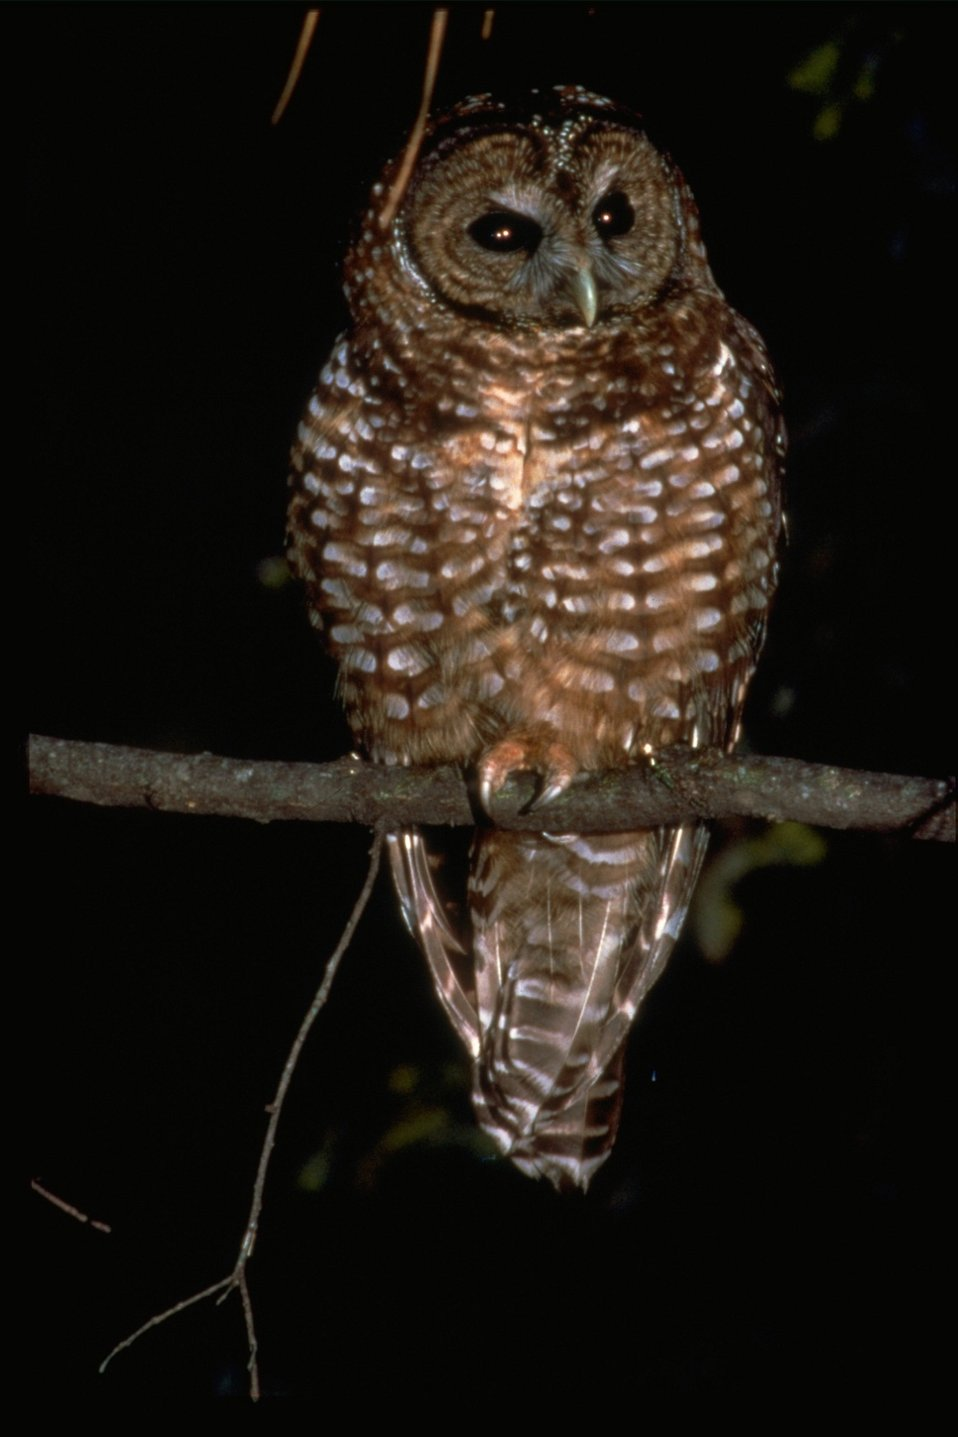 A spotted owl perched on a branch.